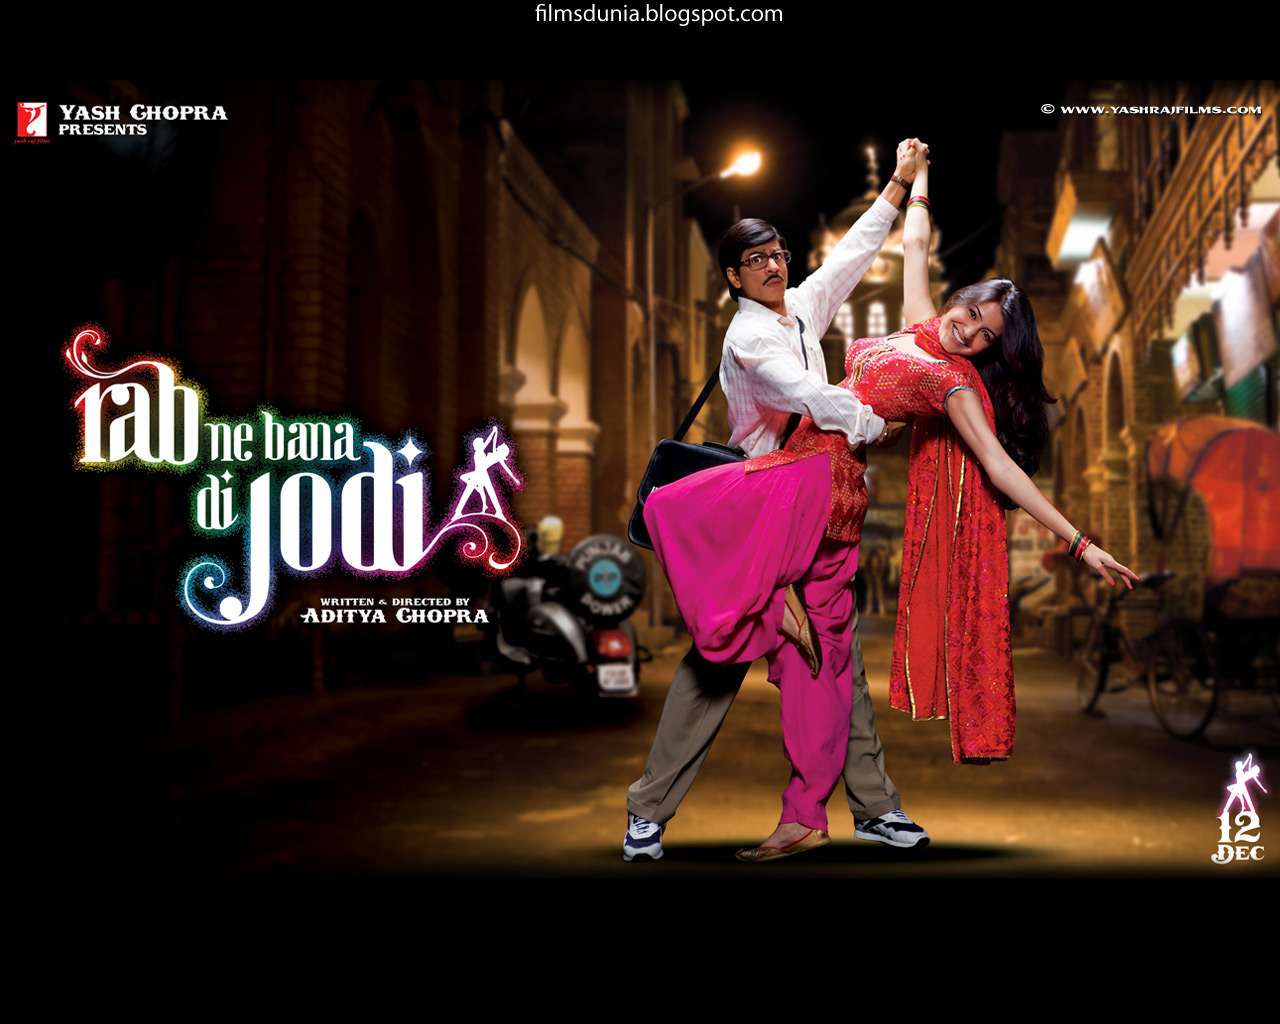 Finally the first promo of Rab Ne Bana Di Jodi was officially released on